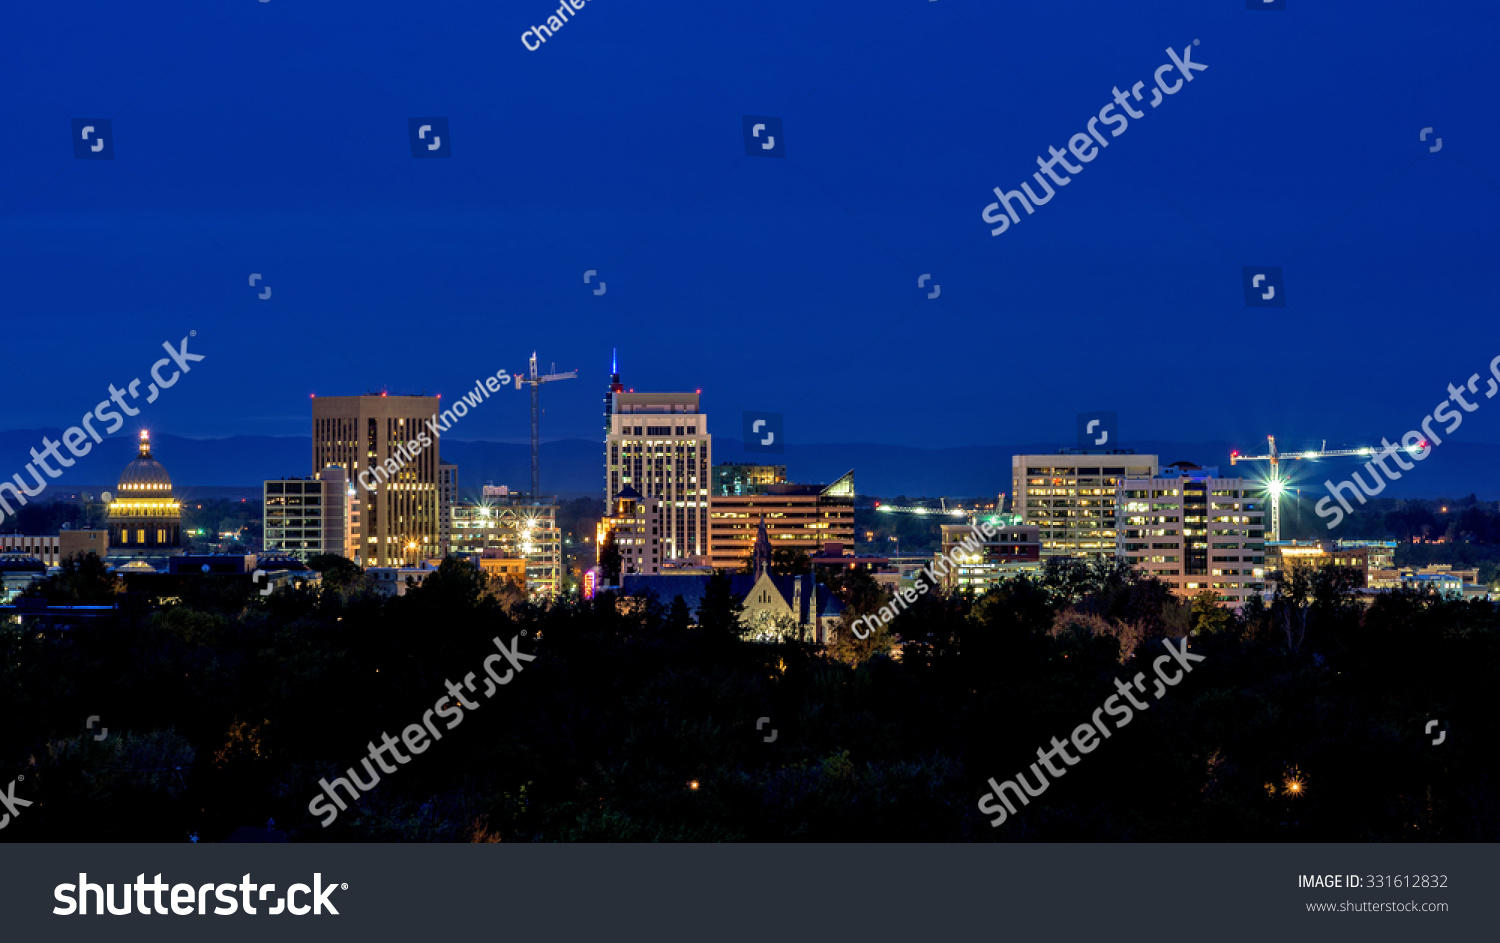 Beautiful Skyline of Boise Idaho